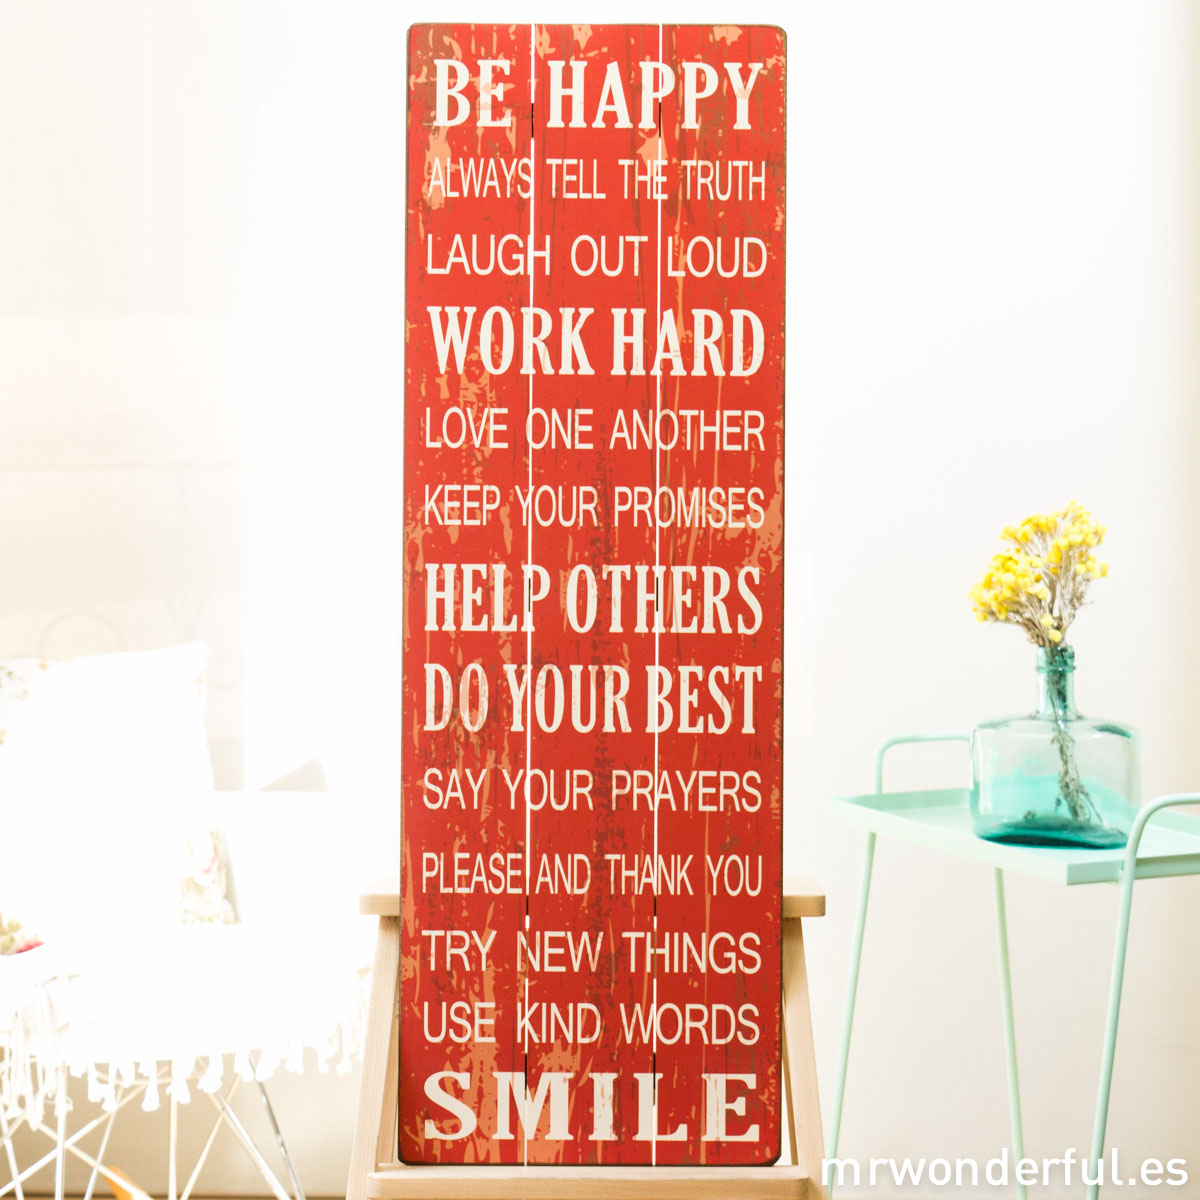 mrwonderful_GI6006_3_letrero-madera-mediano_be-happy-5